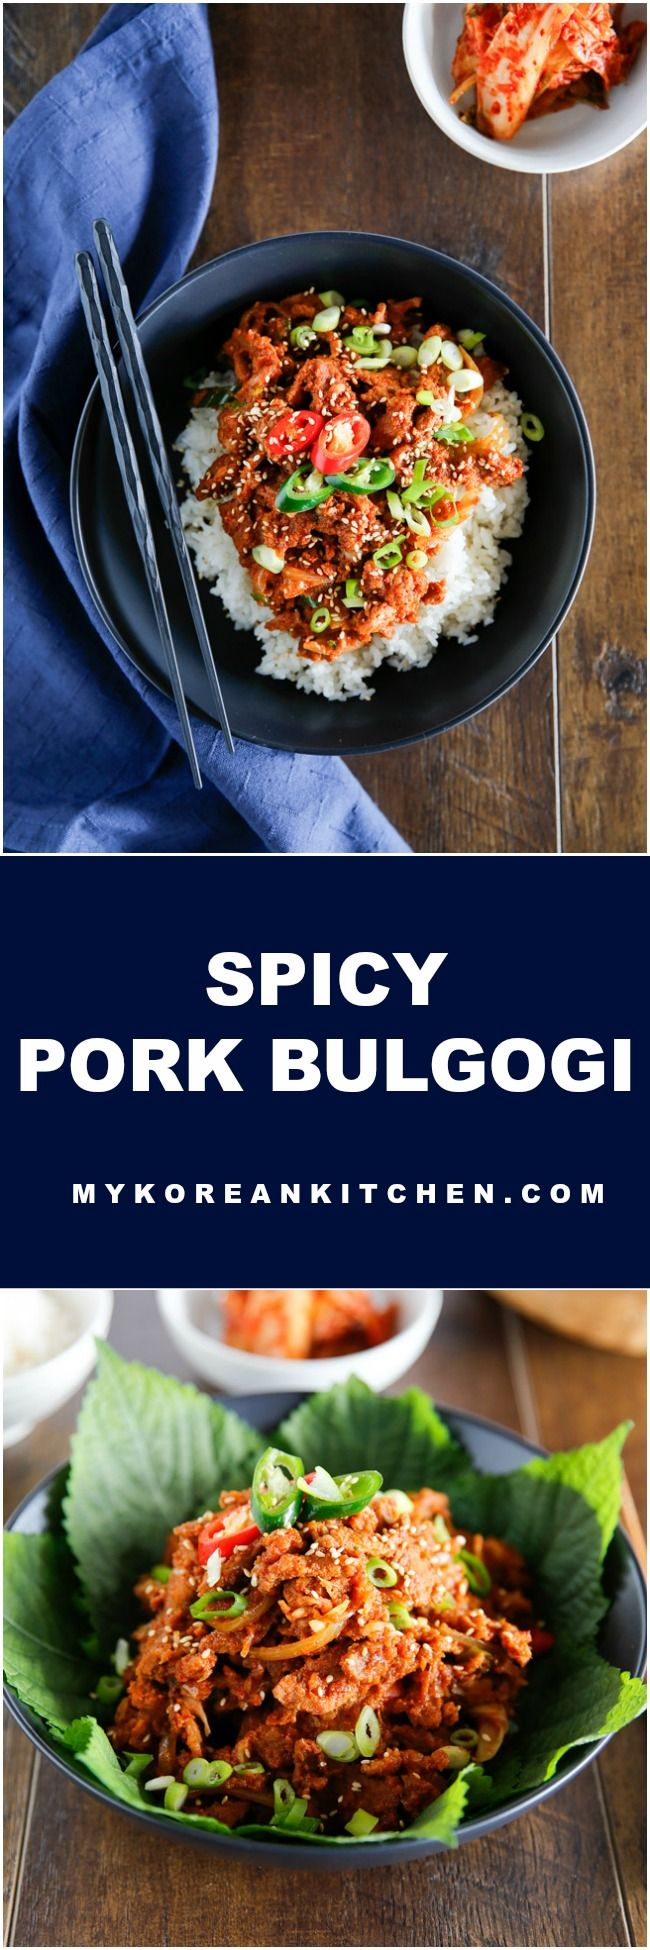 Spicy Pork Bulgogi Rice Bowl | MyKoreanKitchen.com